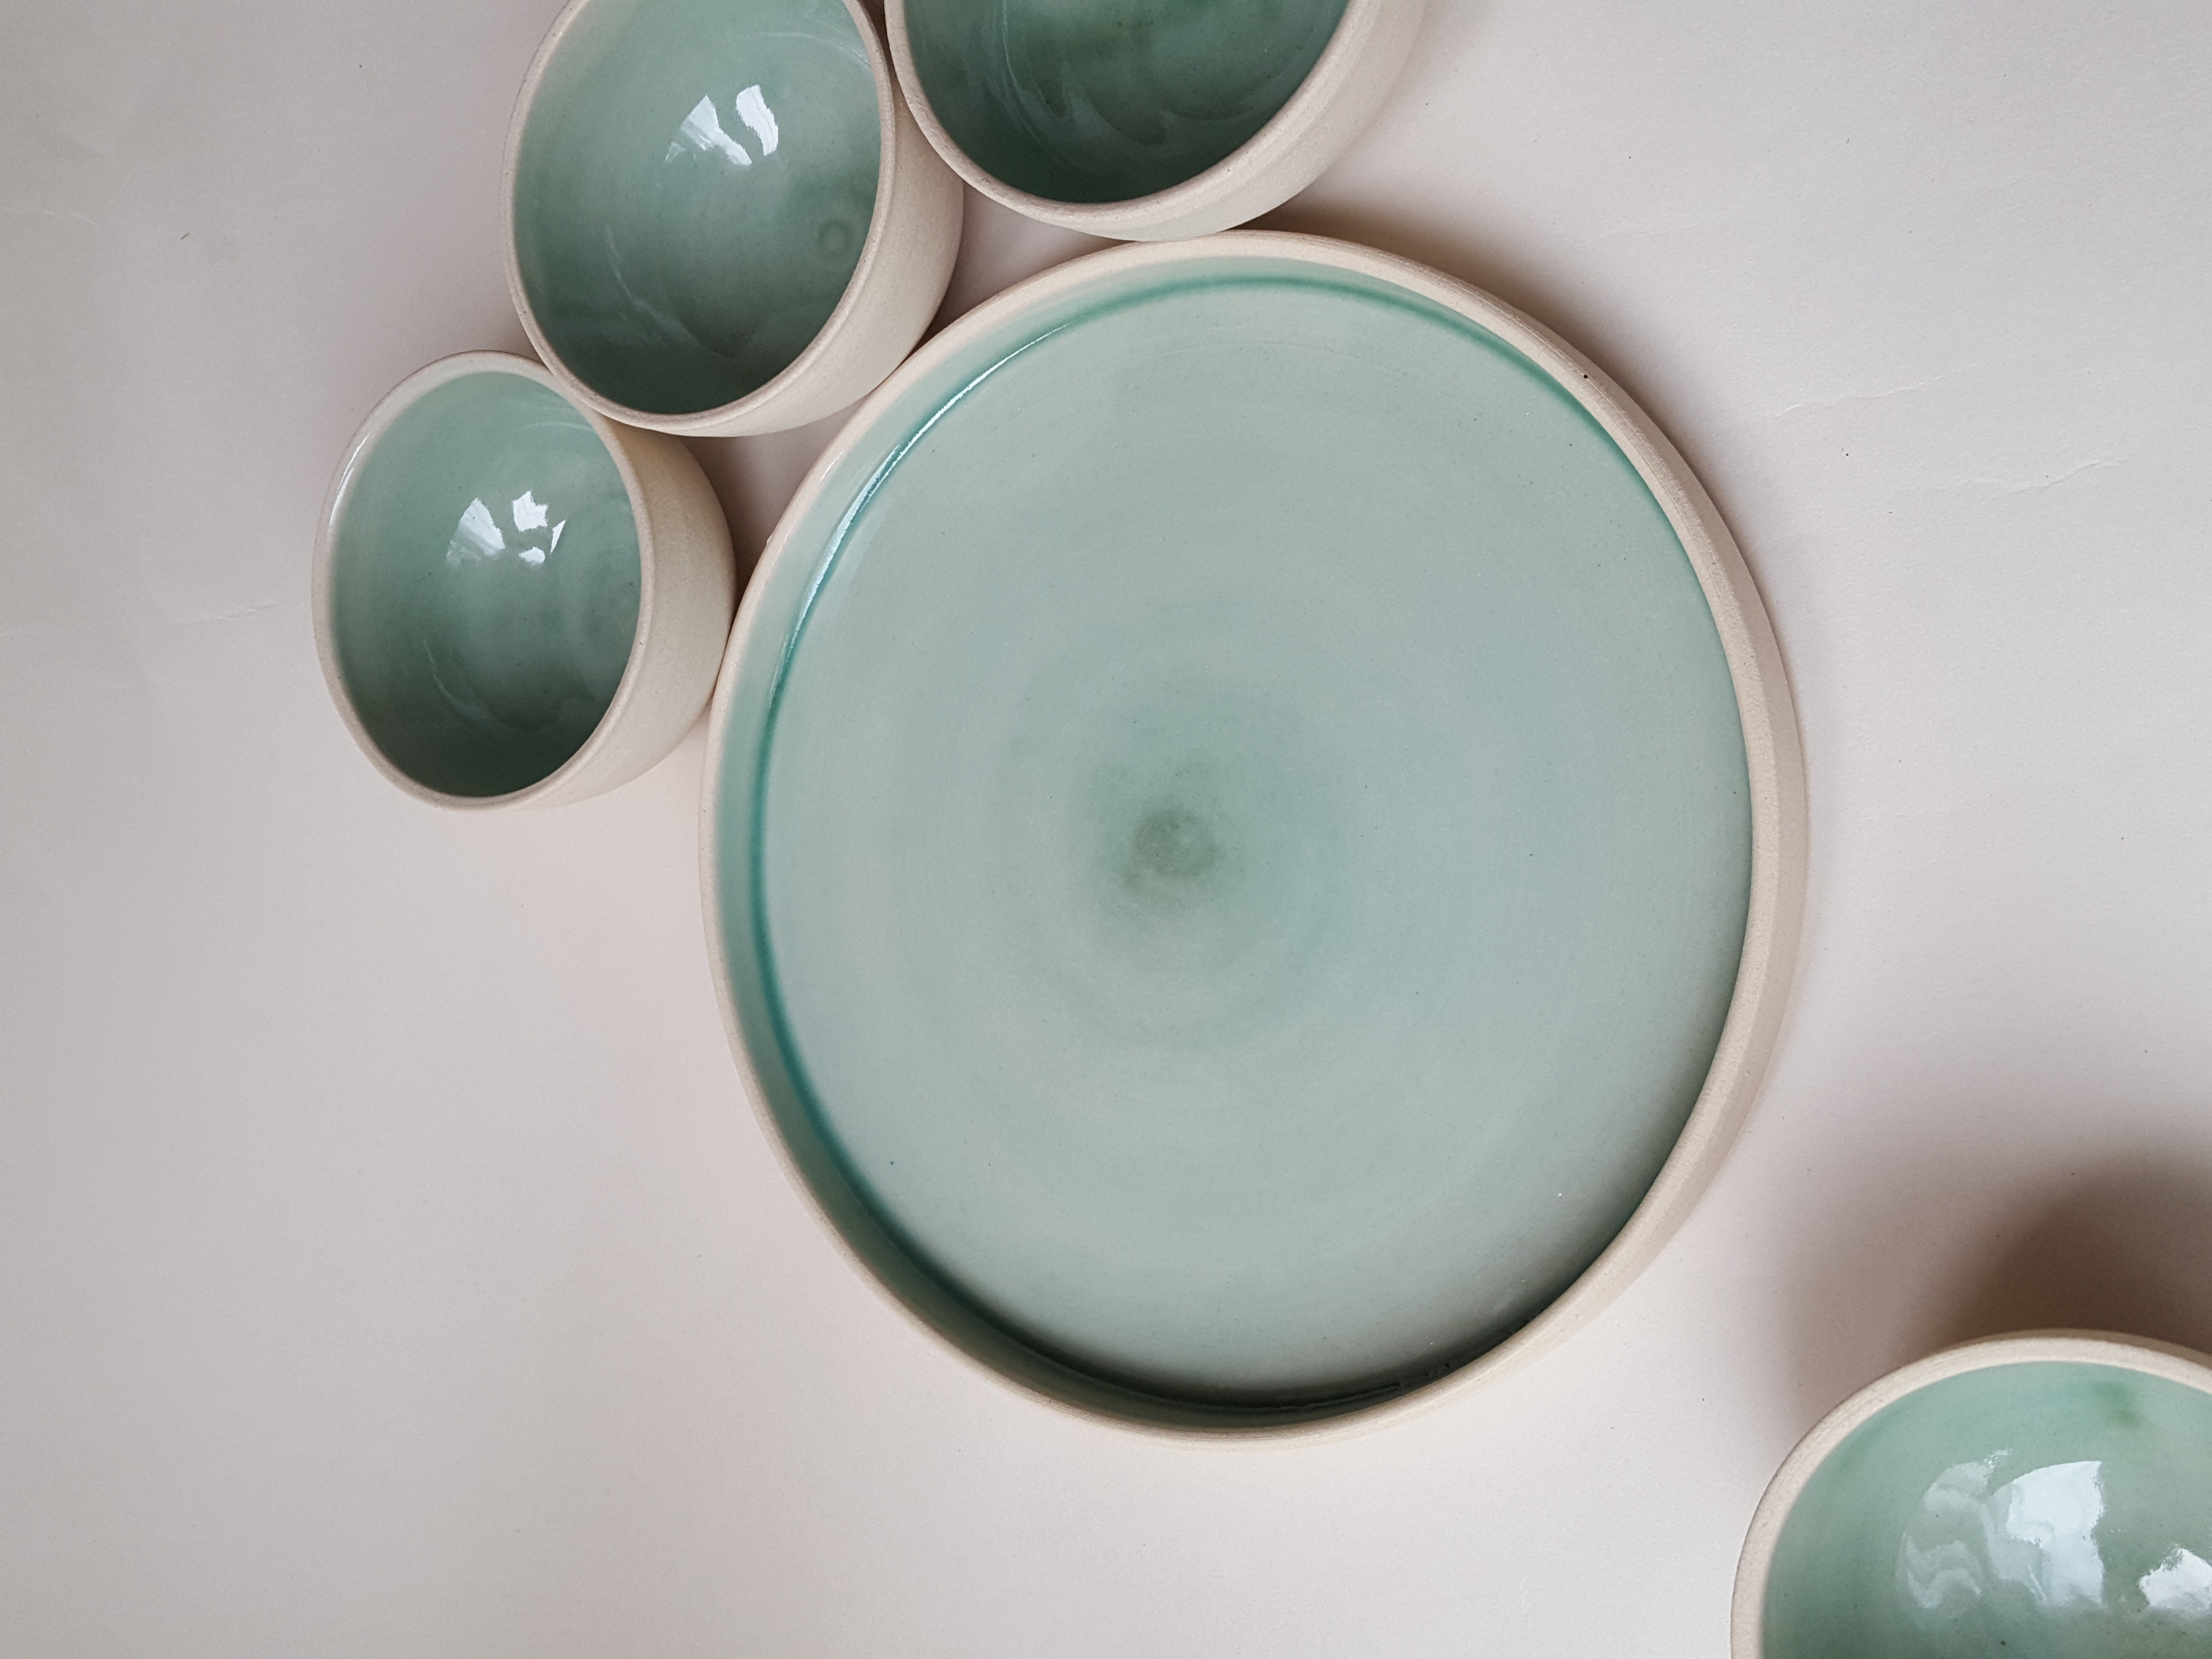 Small and shallow green bowls